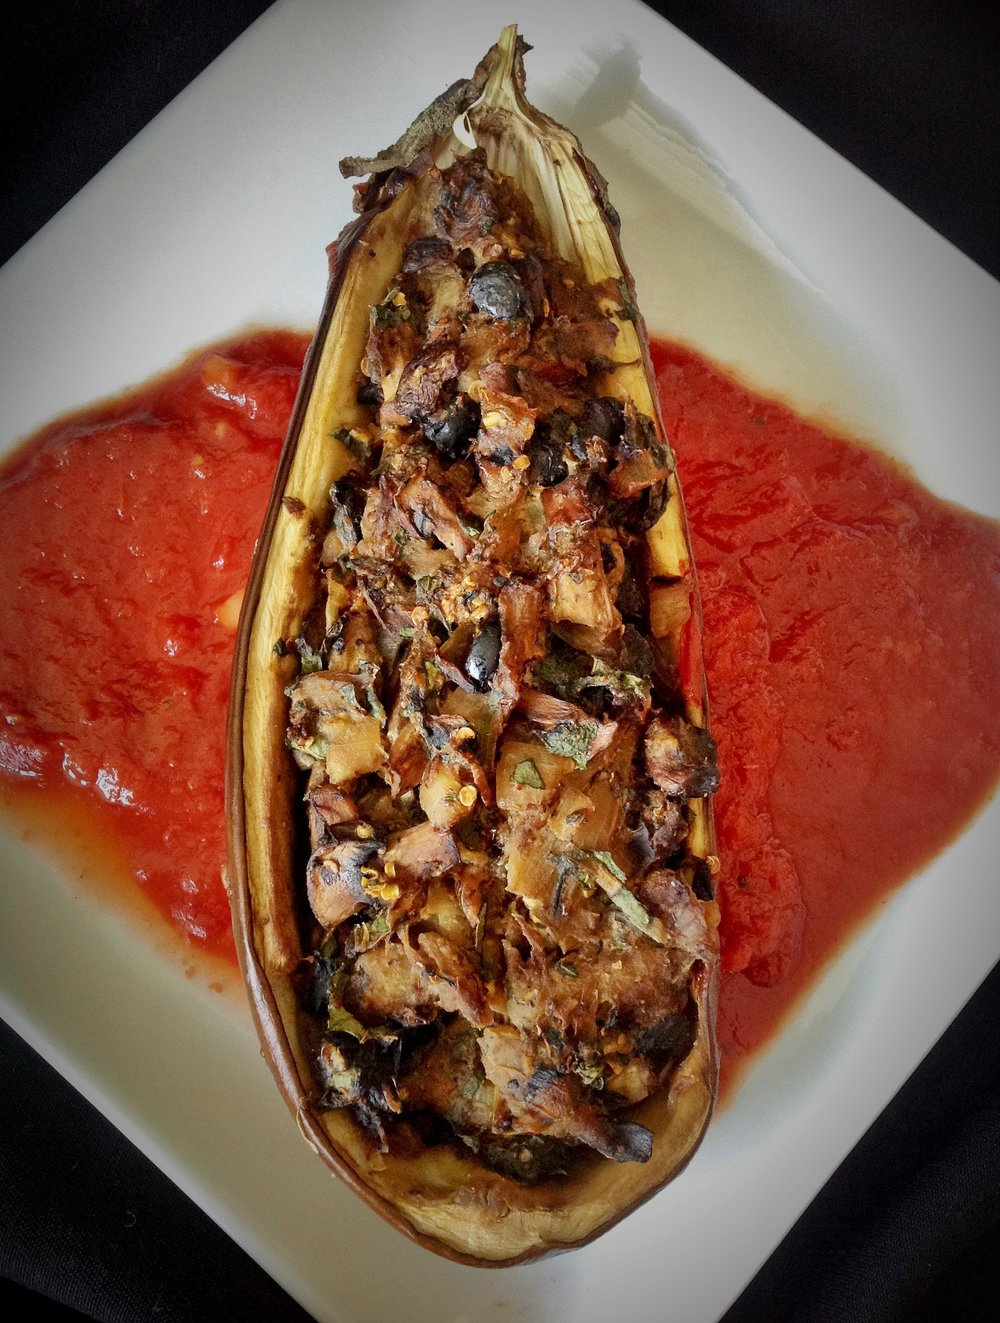 Sardinia Stuffed Eggplant - Healthy, Plant-Based, Oil-Free, Vegan, Italian Mediterranean Dinner Entree with Olives and Mushrooms